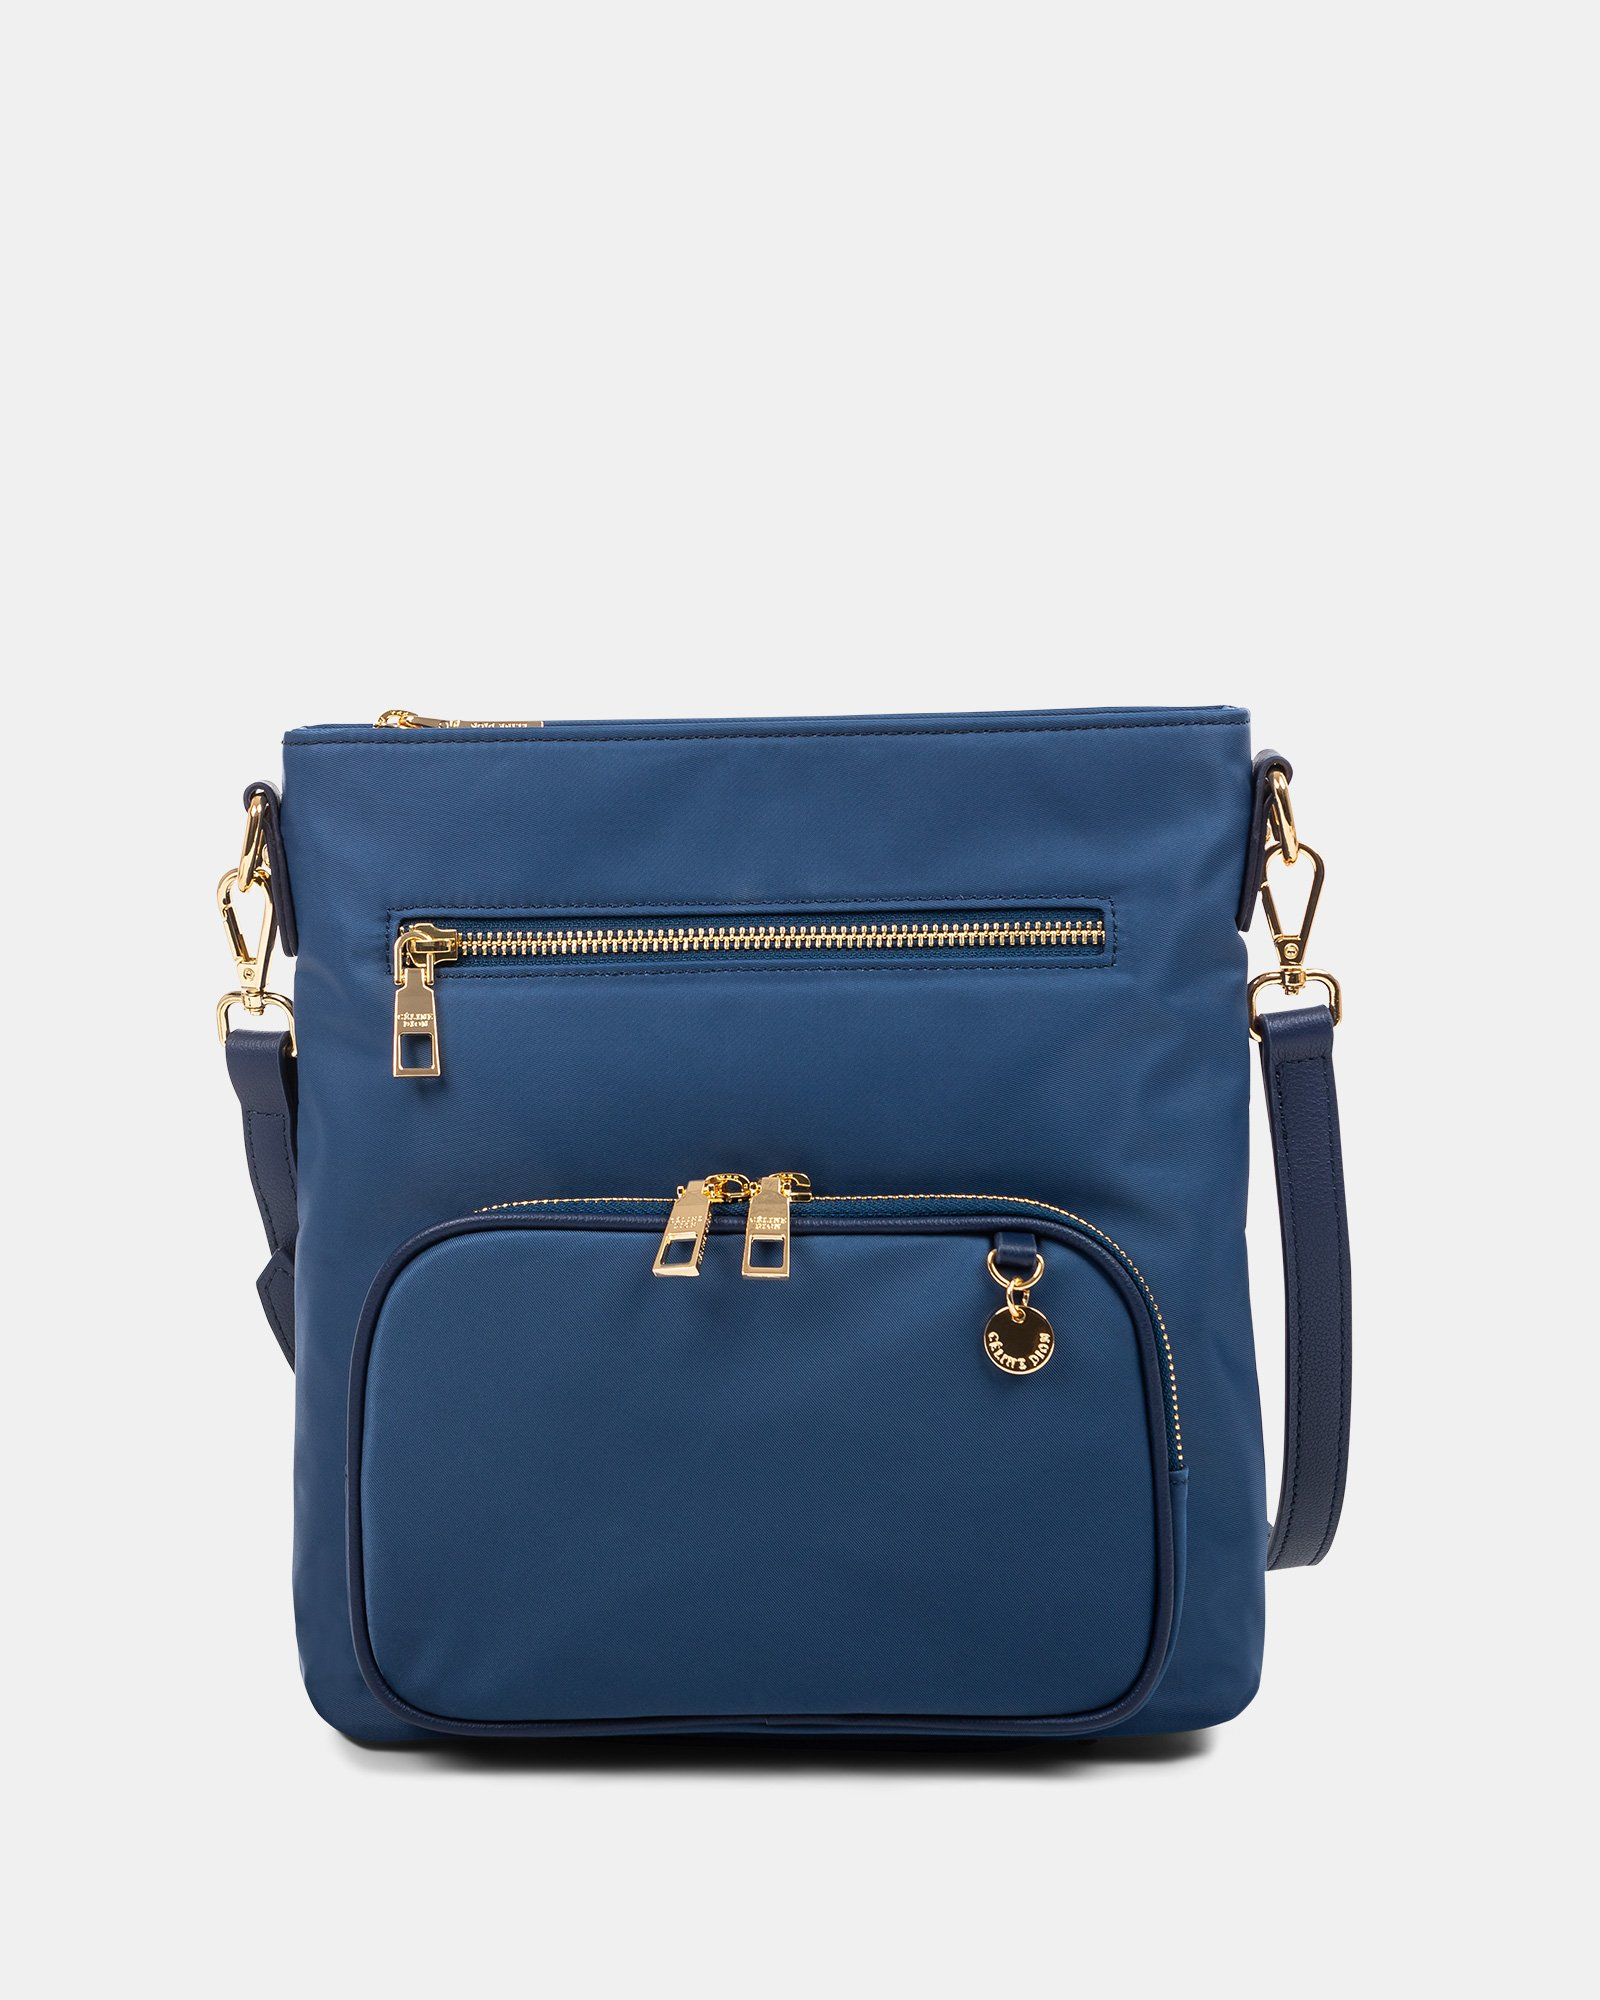 NYLON - CROSSBODY BAG WITH LEATHER TRIMS with RFID protection - denim - Céline Dion - Zoom